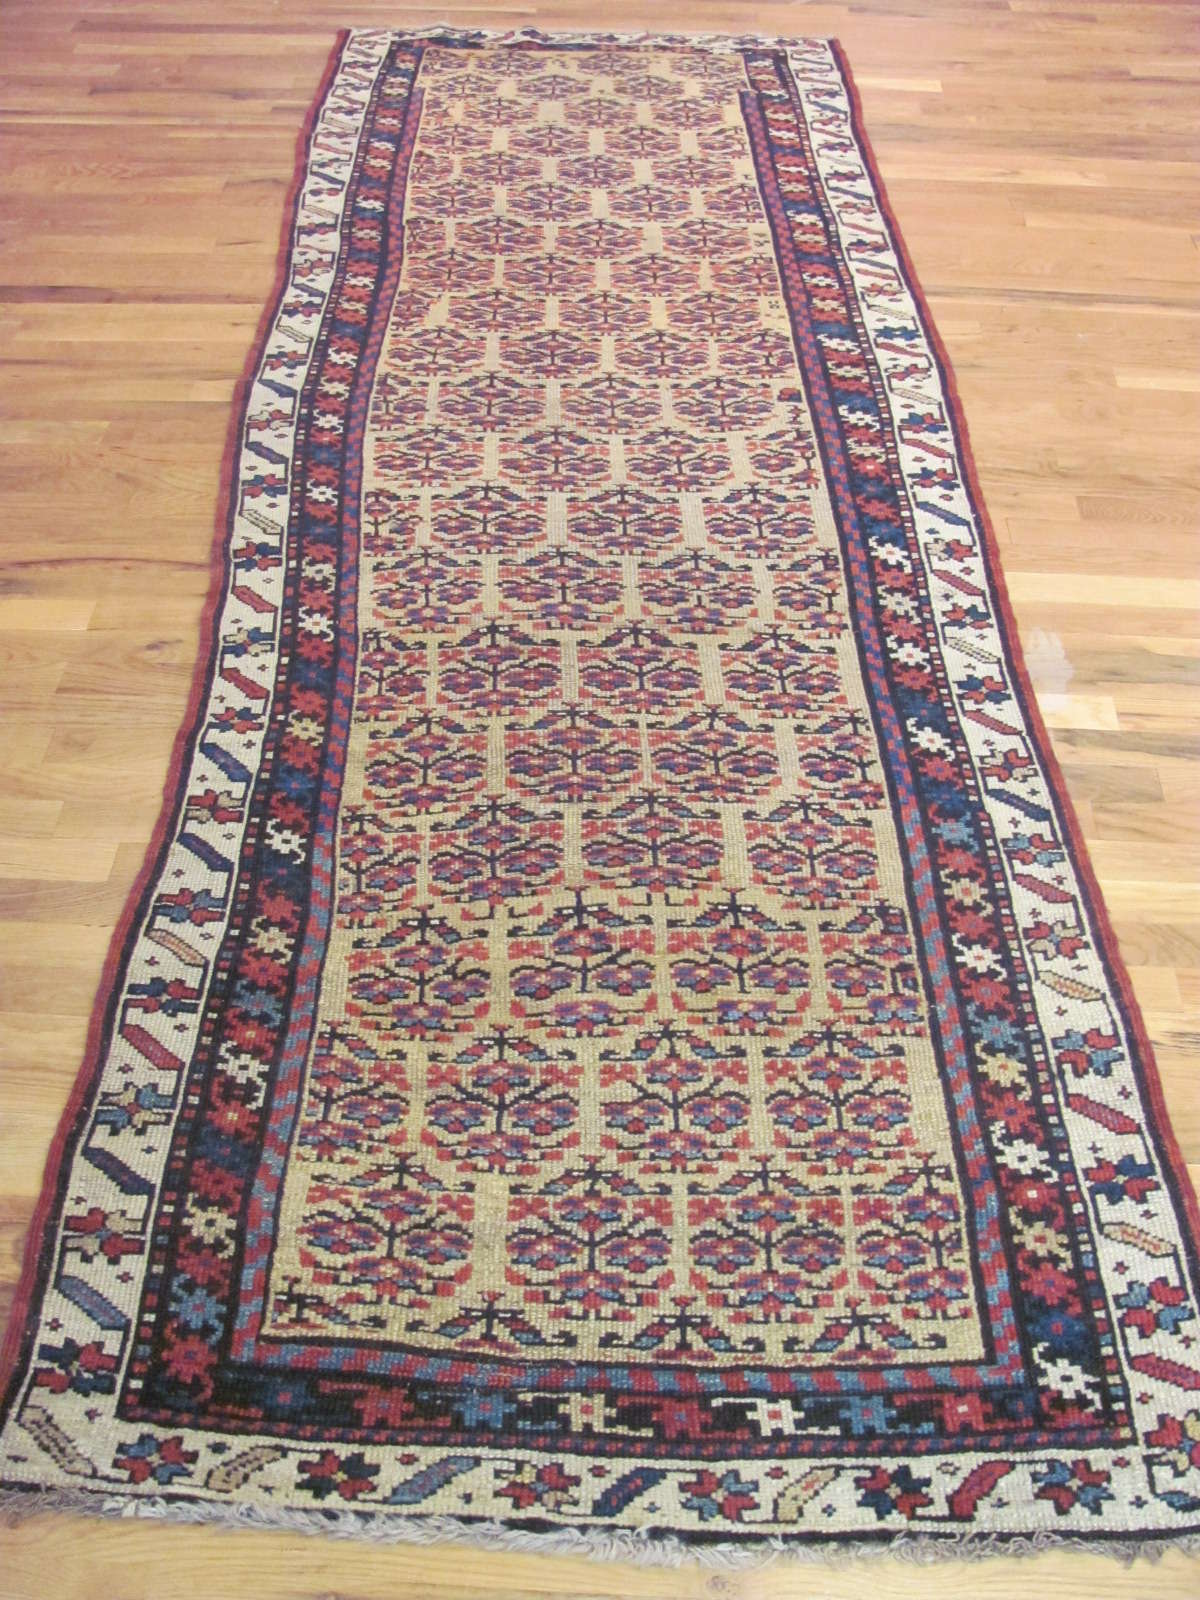 Kurd Rug | Northwest Persia | Handmade | Antique Circa 1890